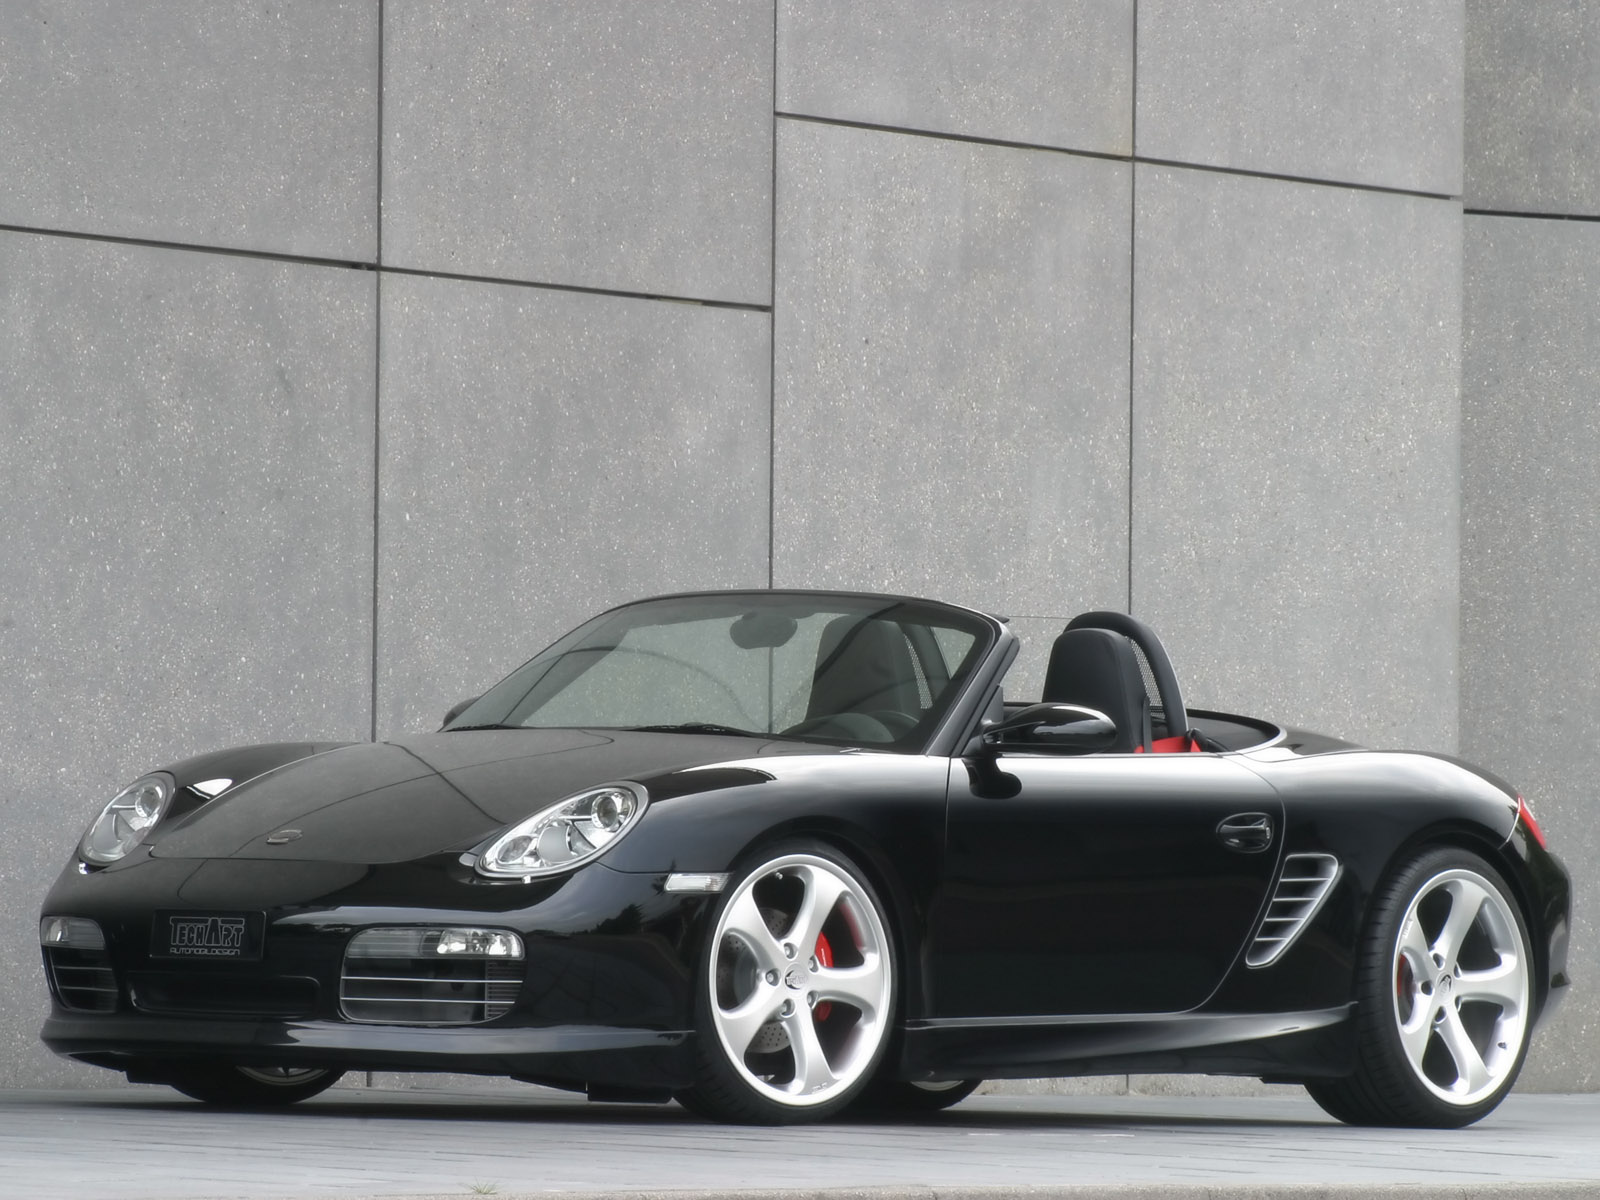 Download Desktop Wallpaper Black Porsche Sports Car With An Open Top